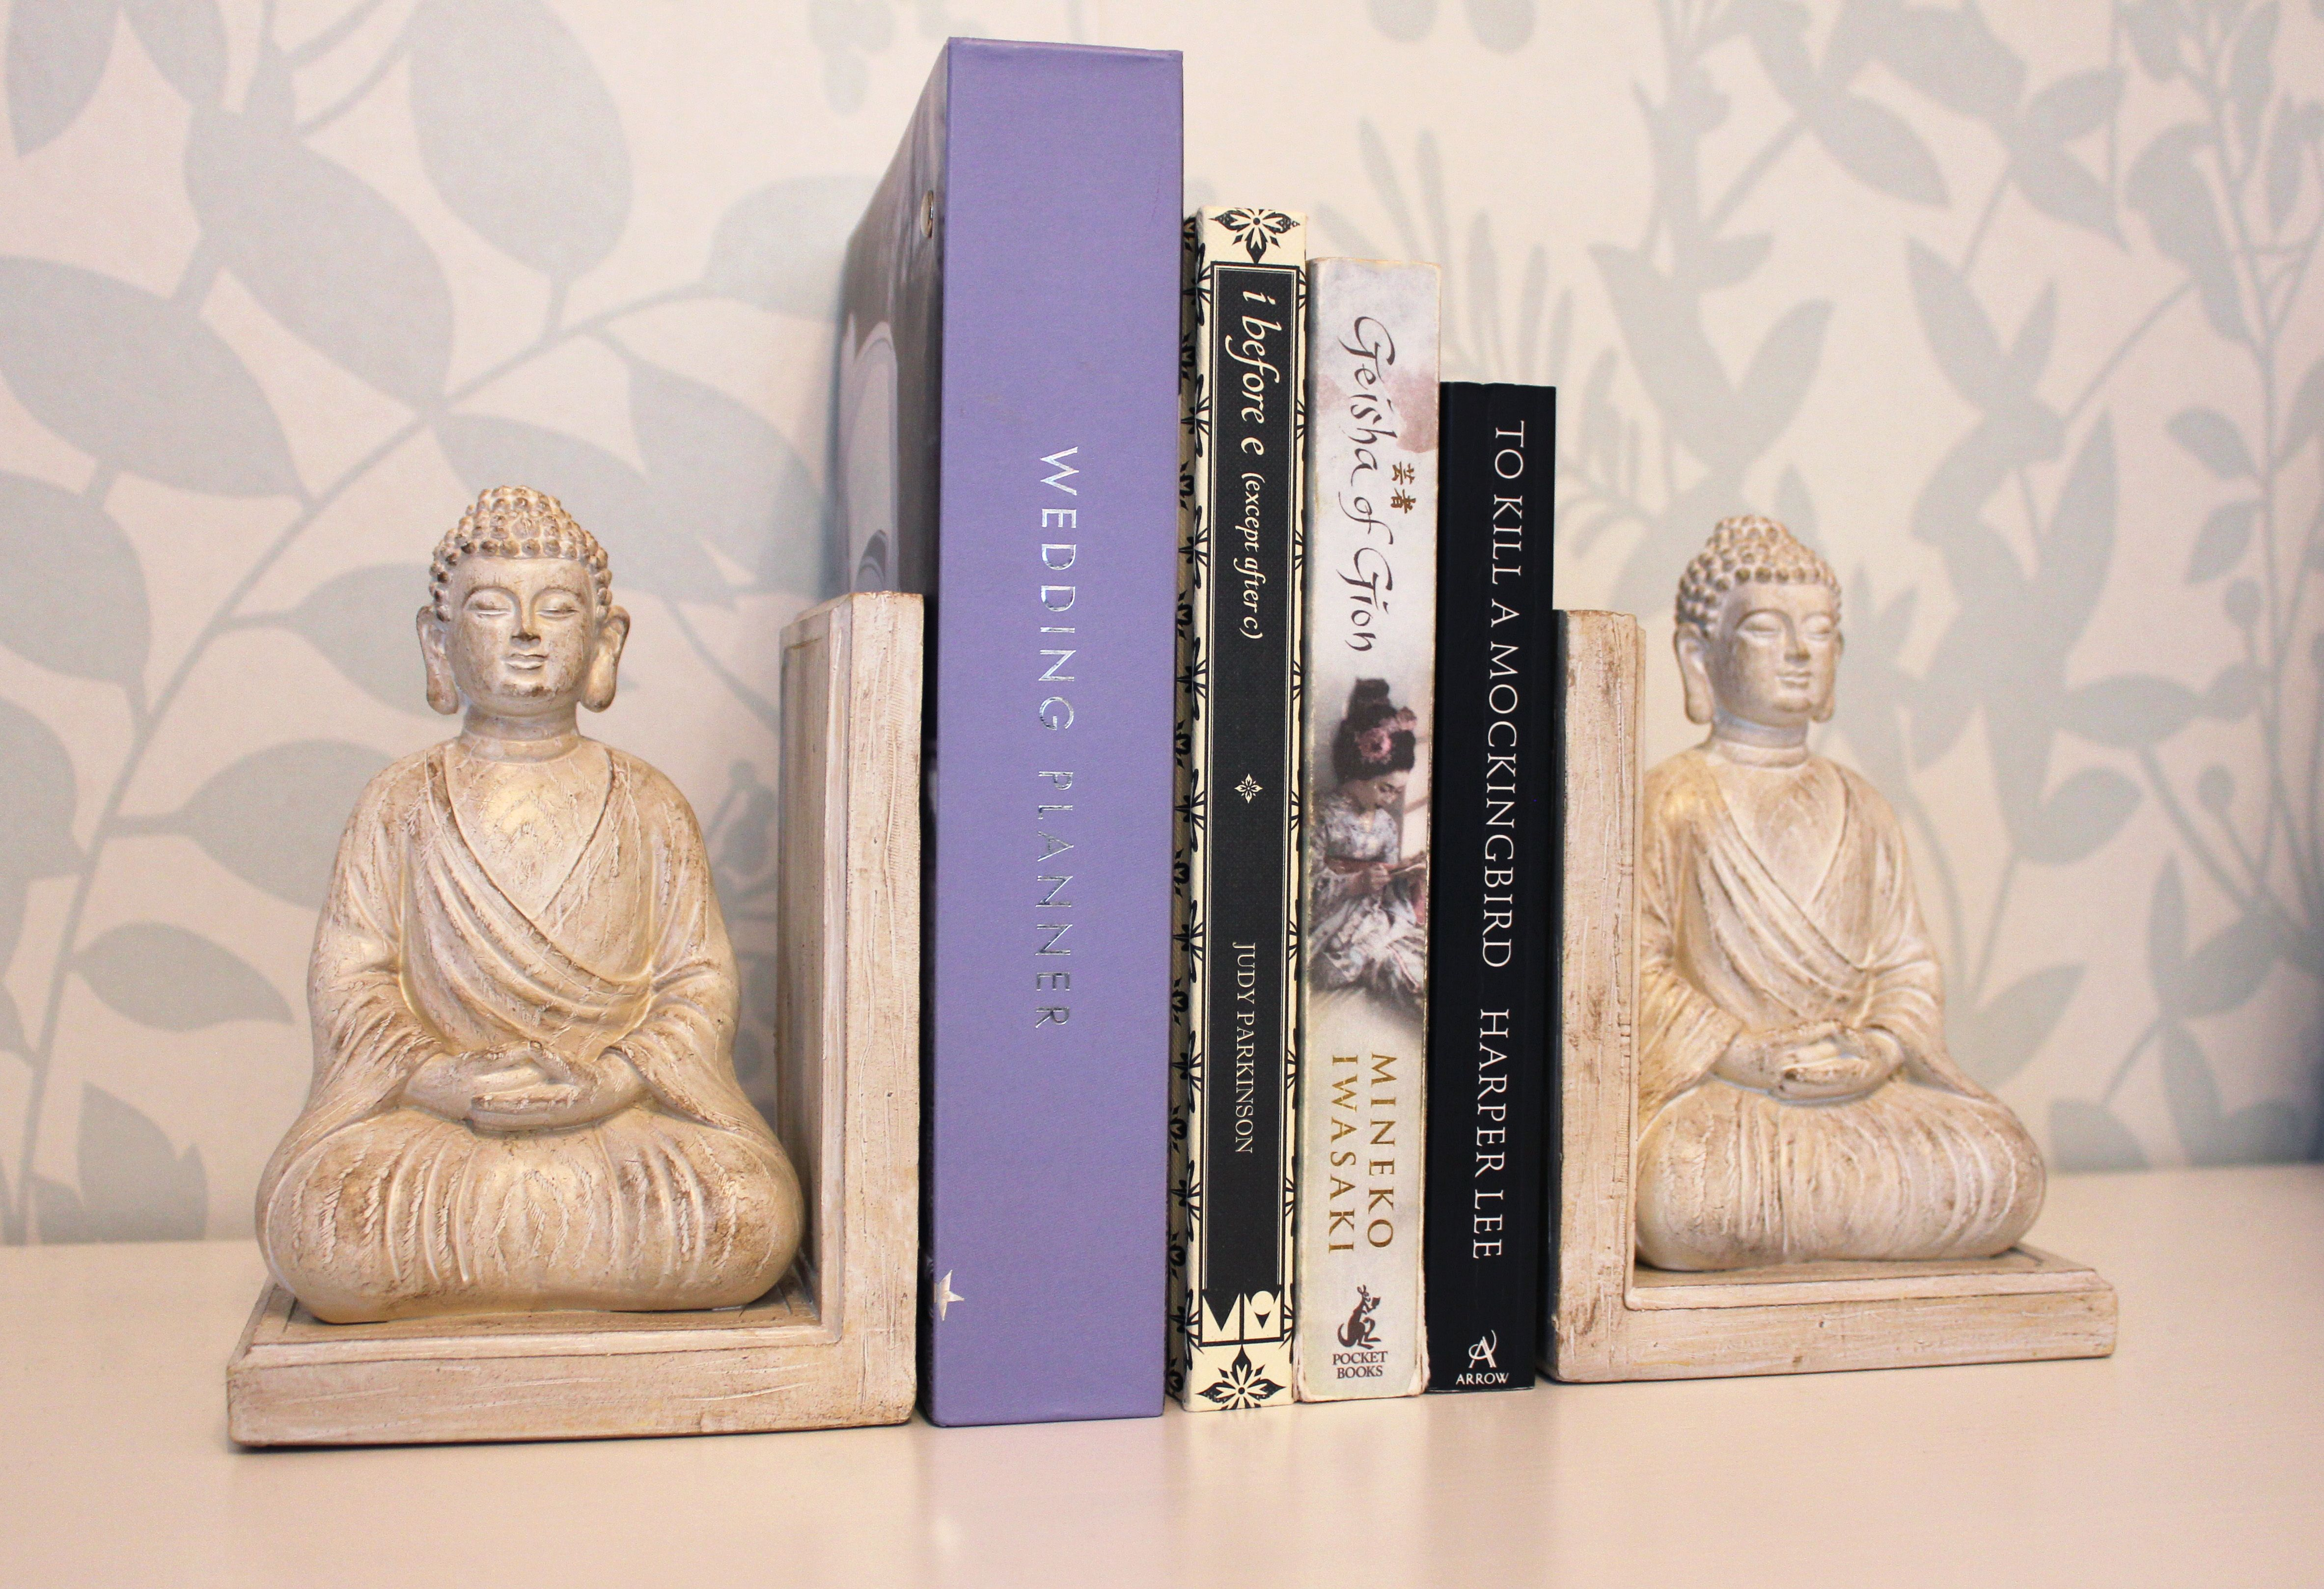 Buddha bookends!